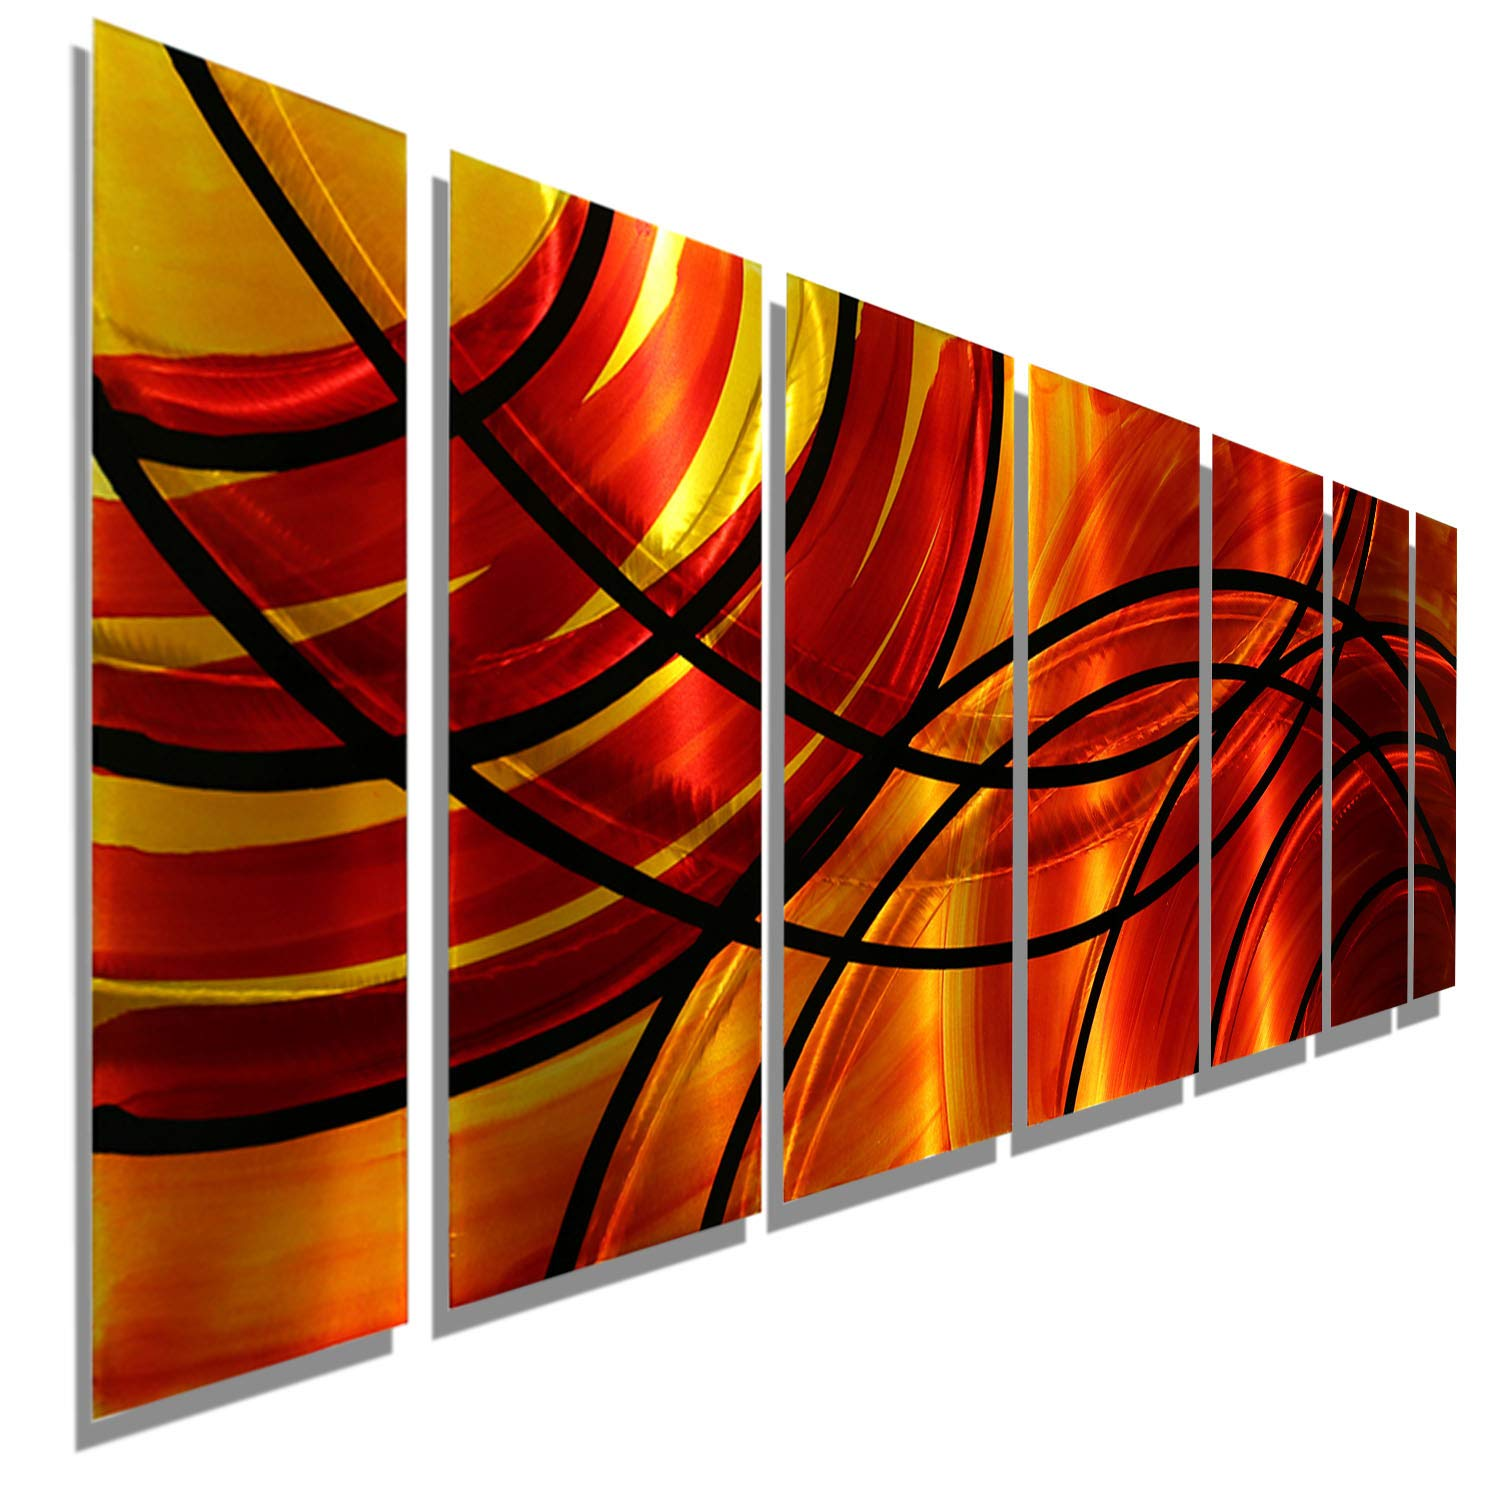 Red Orange Gold Black Abstract Metal Wall Art Painting Contemporary Handcrafted Home Decor Art Sculpture Bound By Fire By Jon Allen